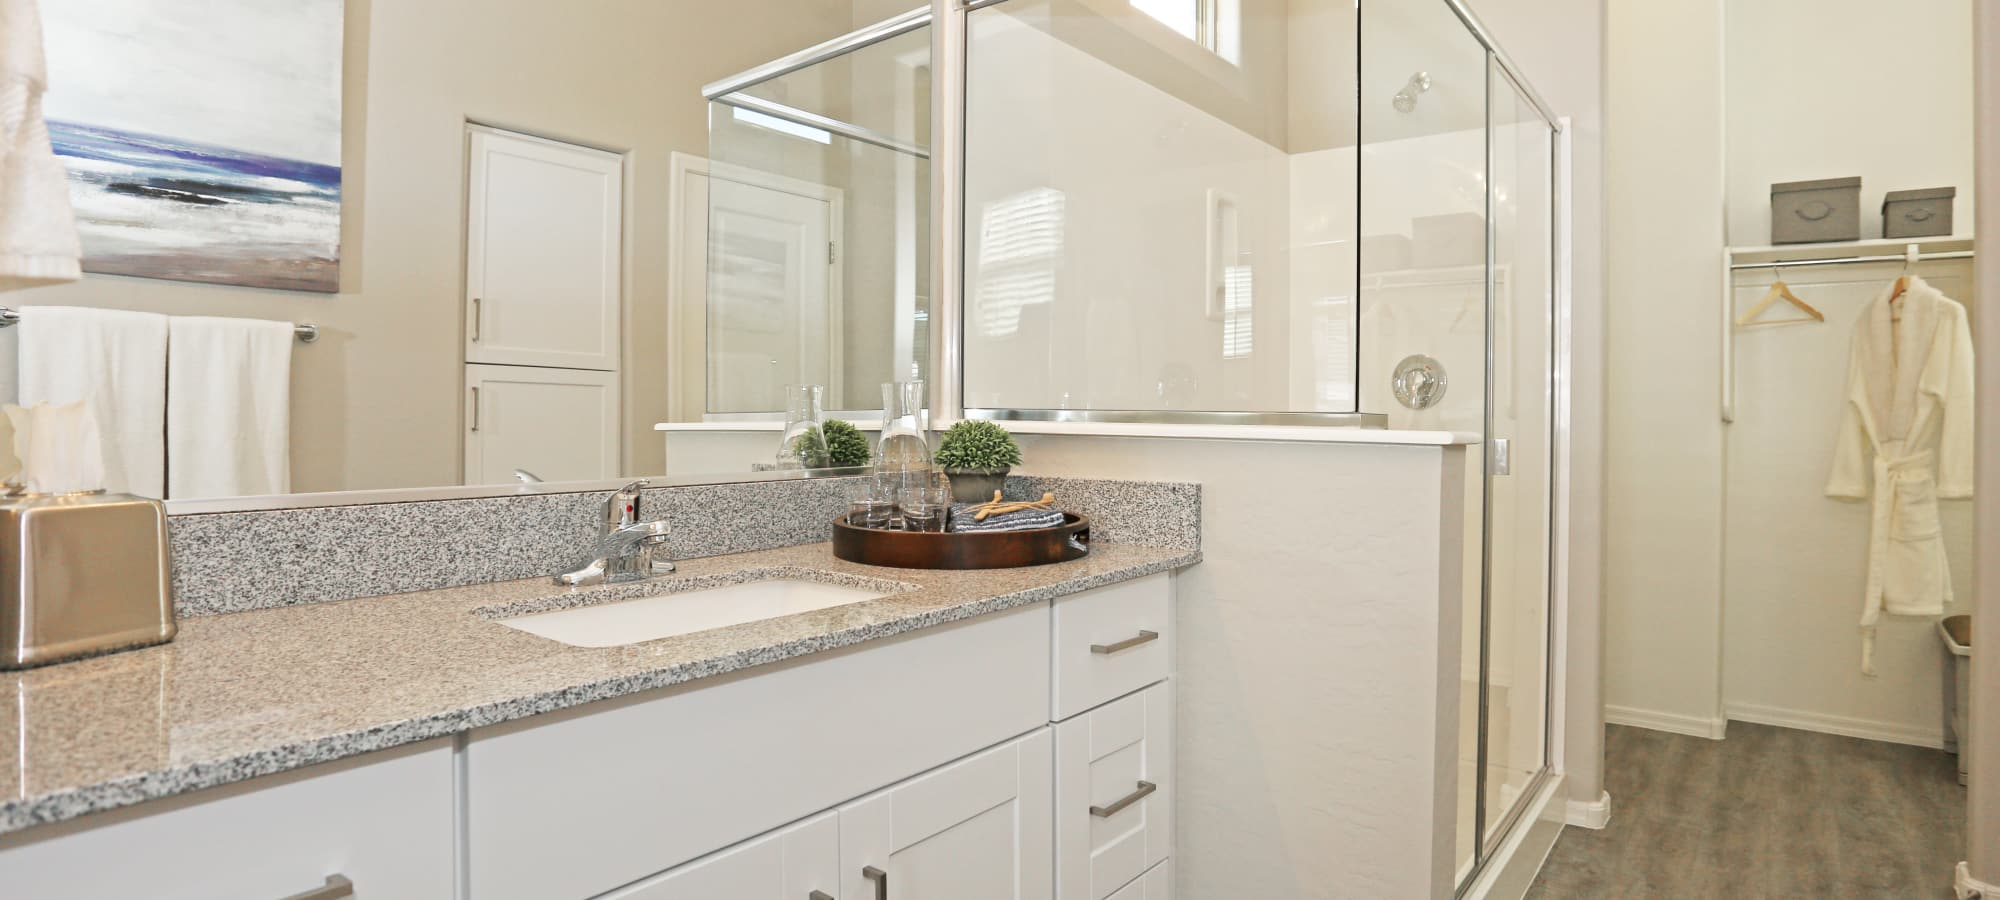 Granite countertop in bathroom of model home at Christopher Todd Communities At Stadium in Glendale, Arizona